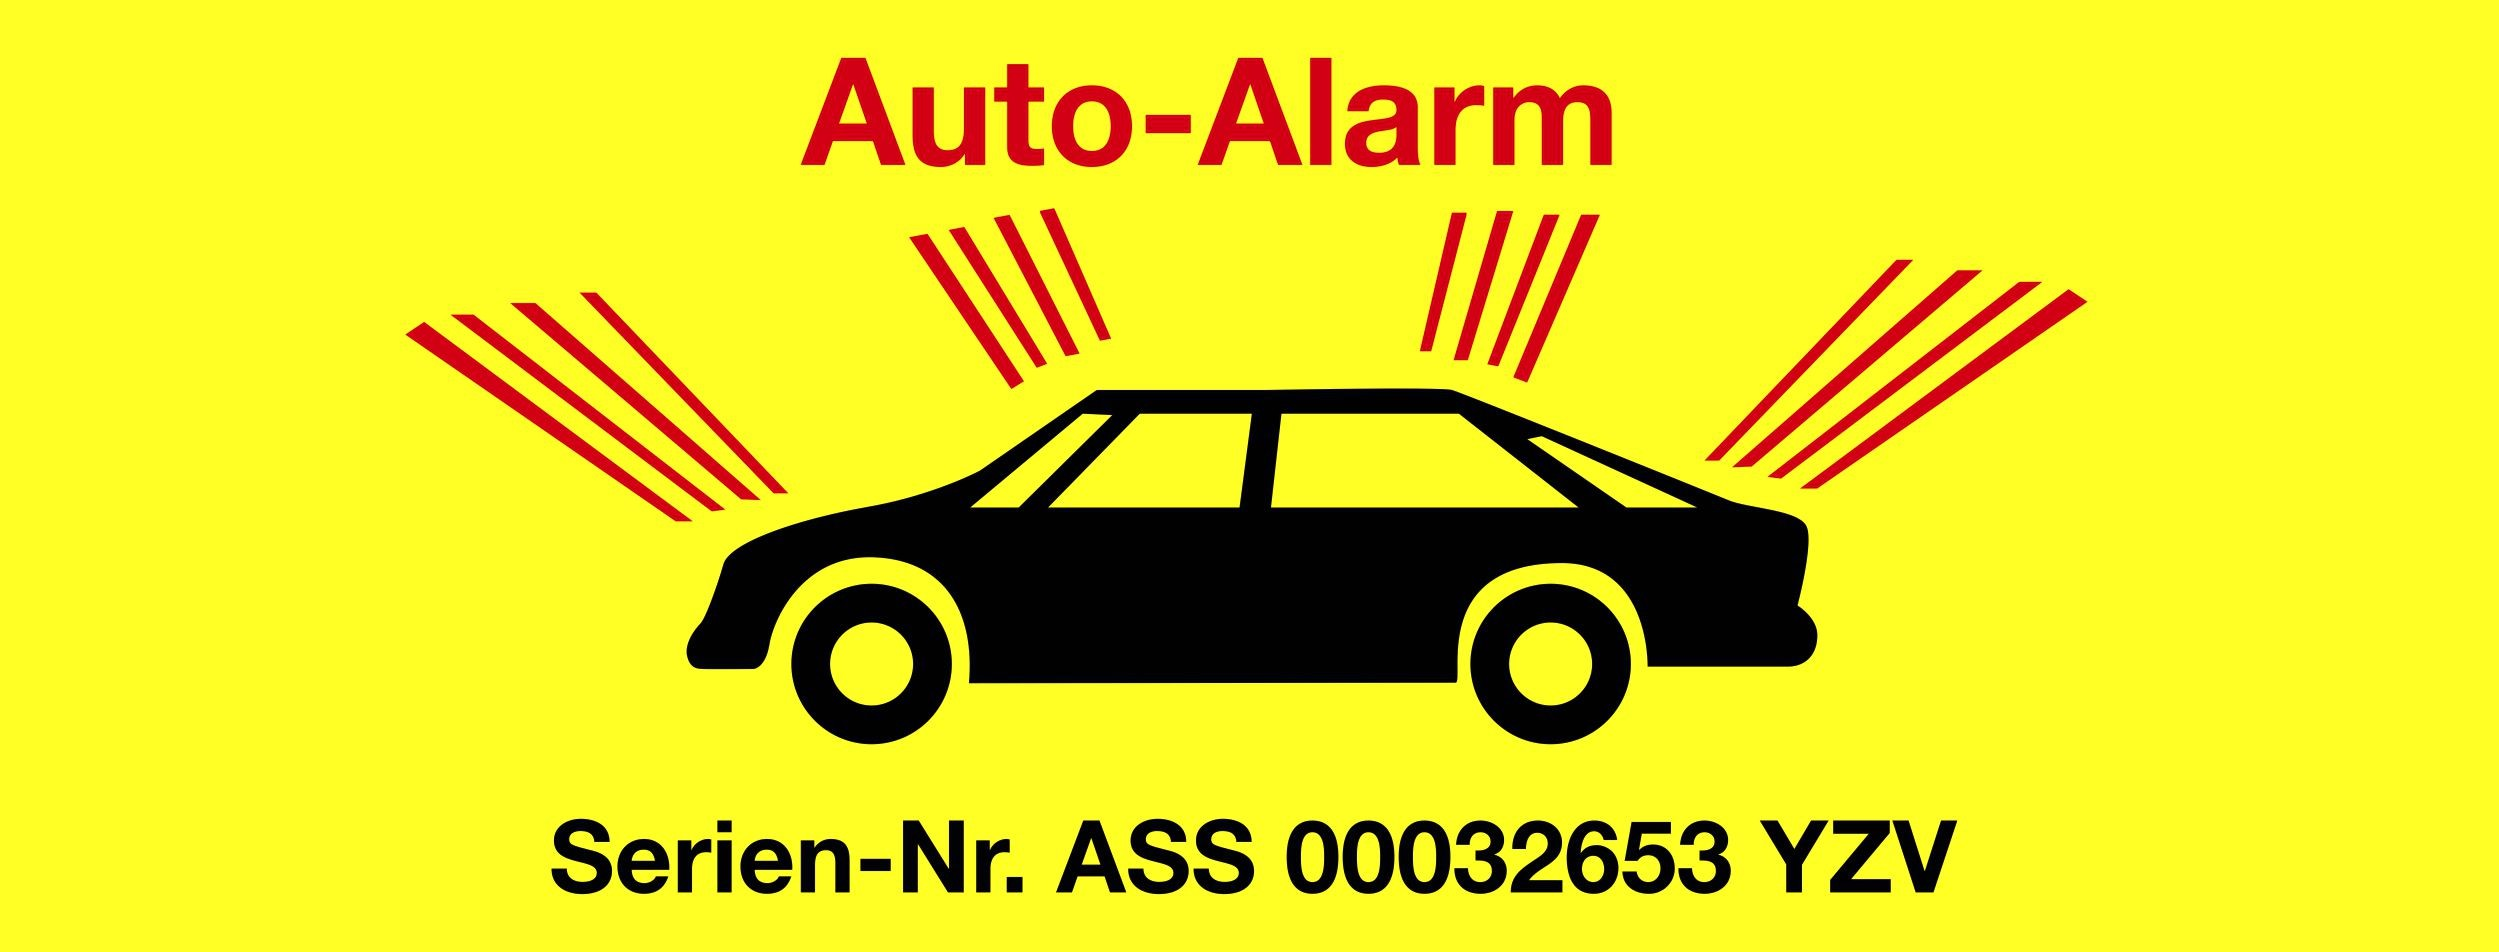 Sticker Auto-Alarm